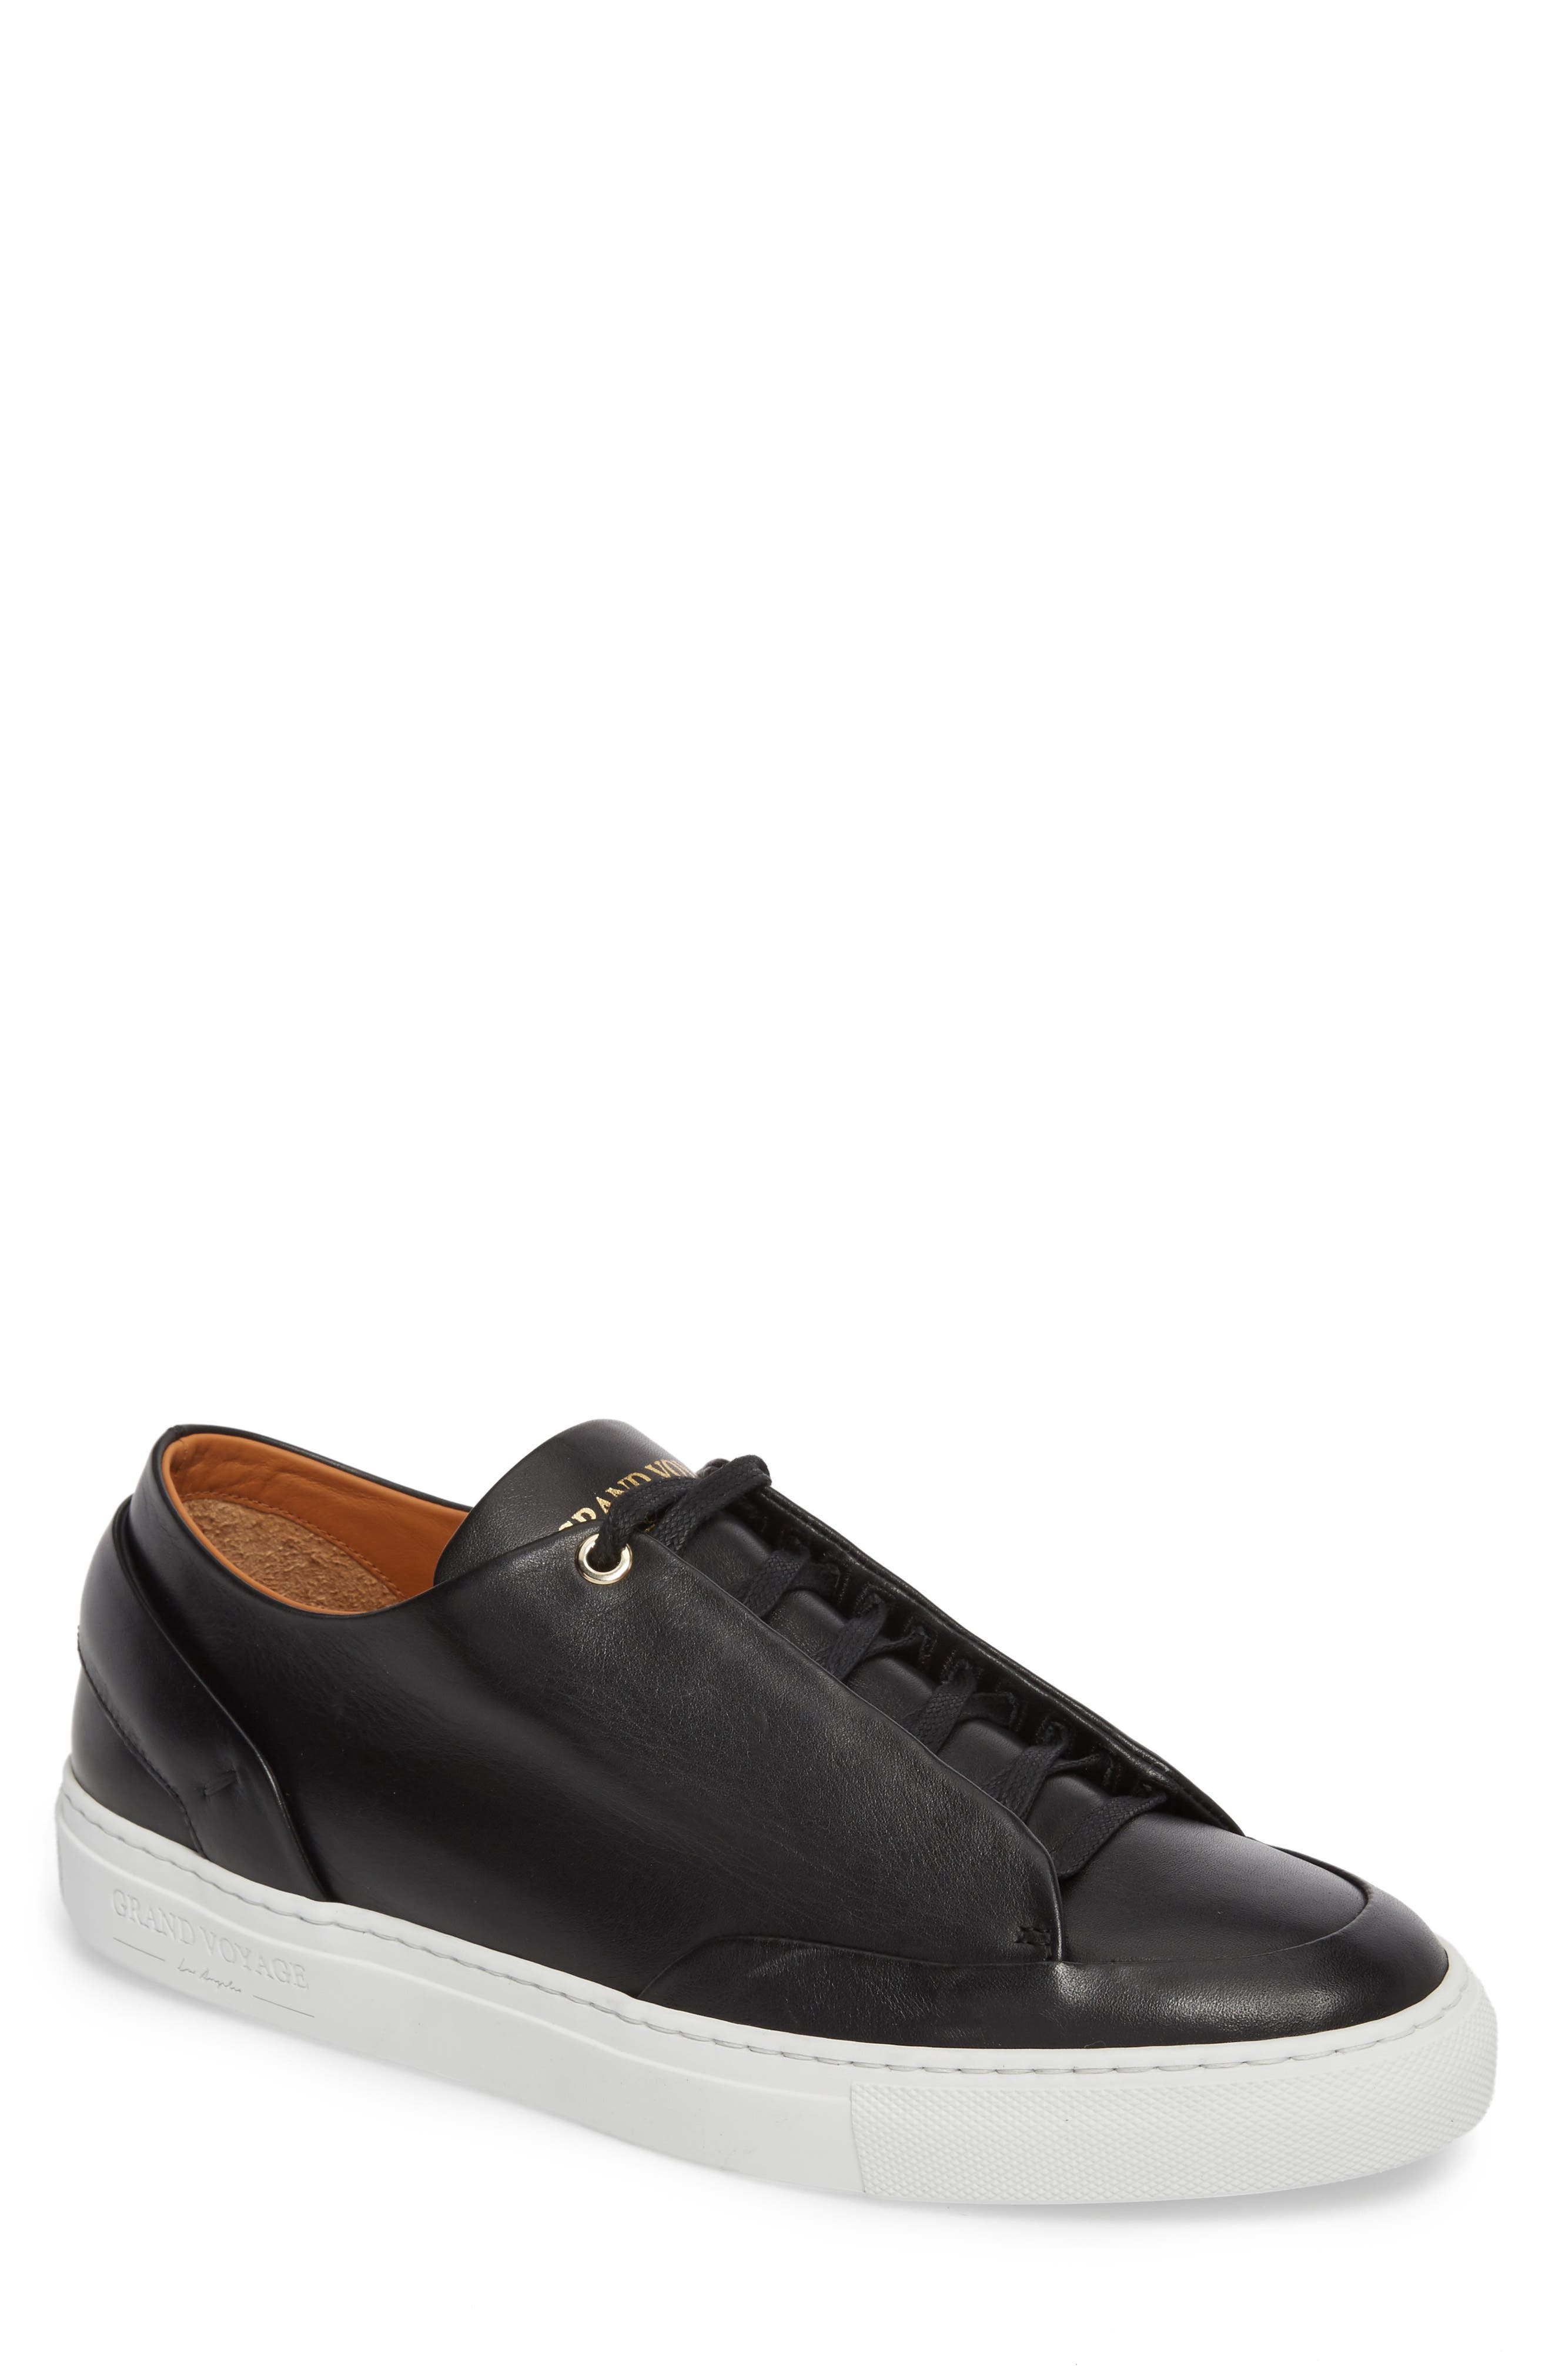 GRAND VOYAGE Avedon Sneaker in Black Leather